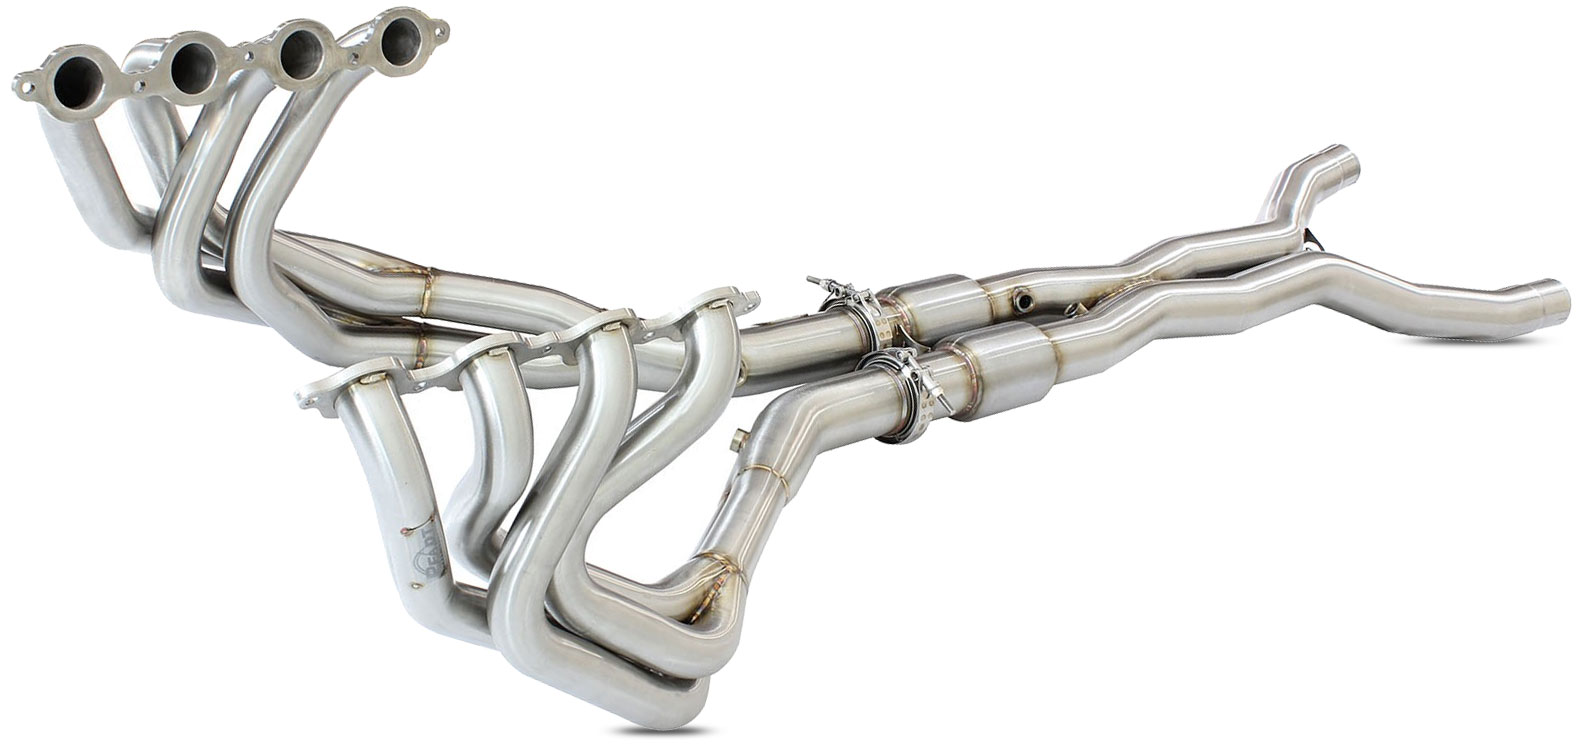 PFADT Series Tri-Y Long Tube Header & X-Pipe (Street Series)